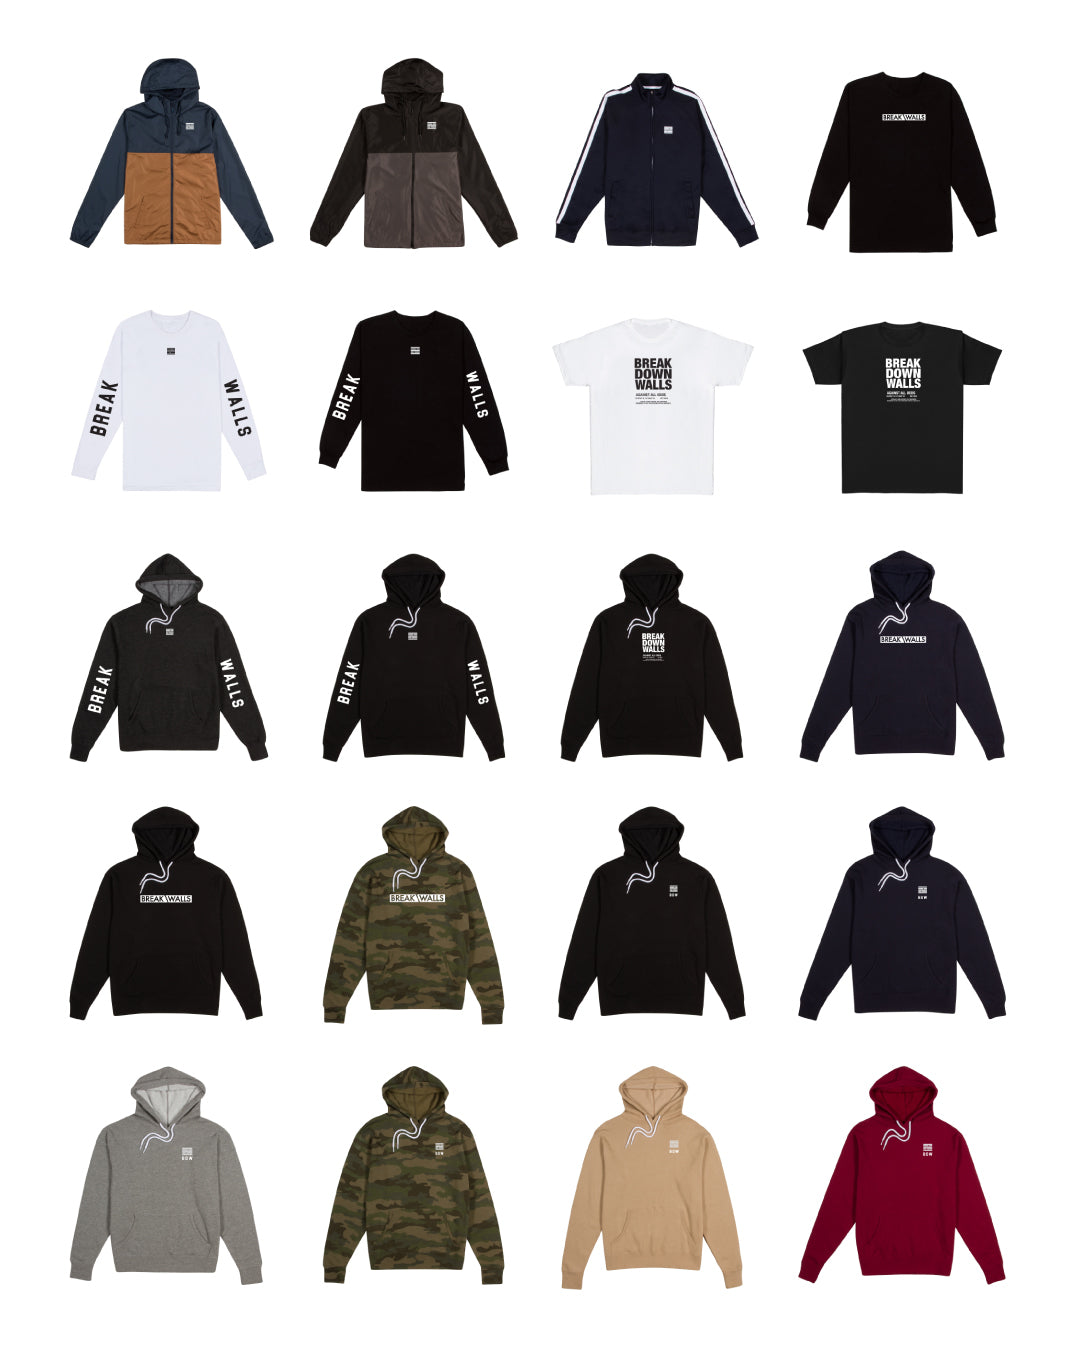 Break Down Walls Clothing Fall / Winter 2018 Collection